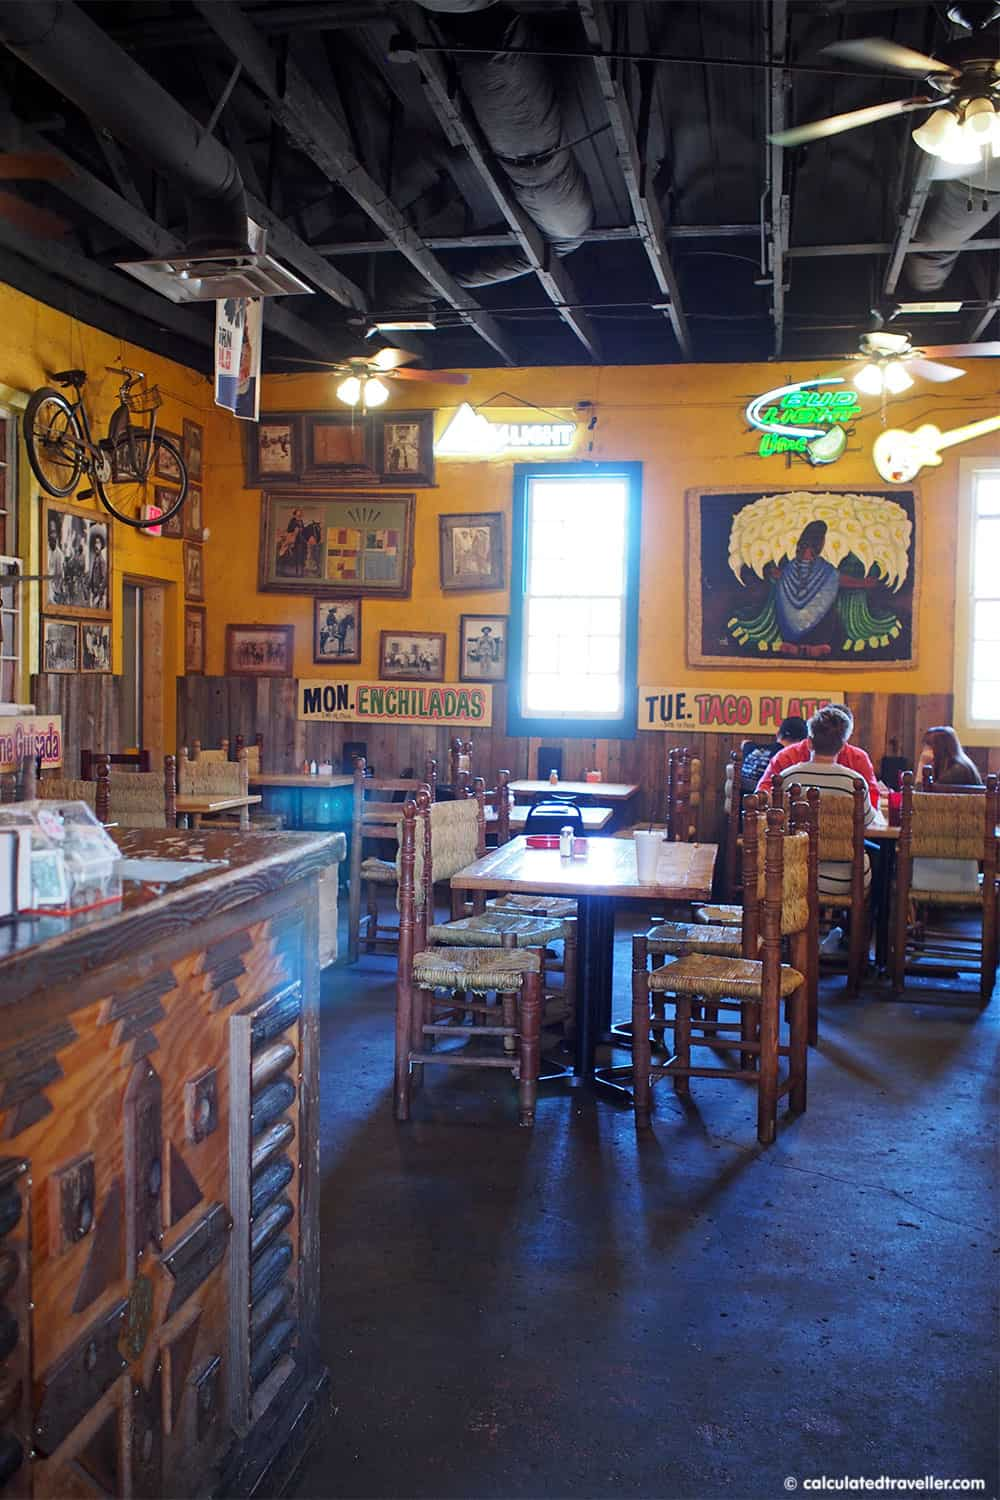 Tex Mex Good Eats at Braceros Mexican Grill and Bar Amarillo Texas - Interior view of the restaurant | #TexMex #Restaurant #Amarillo #Texas #USA